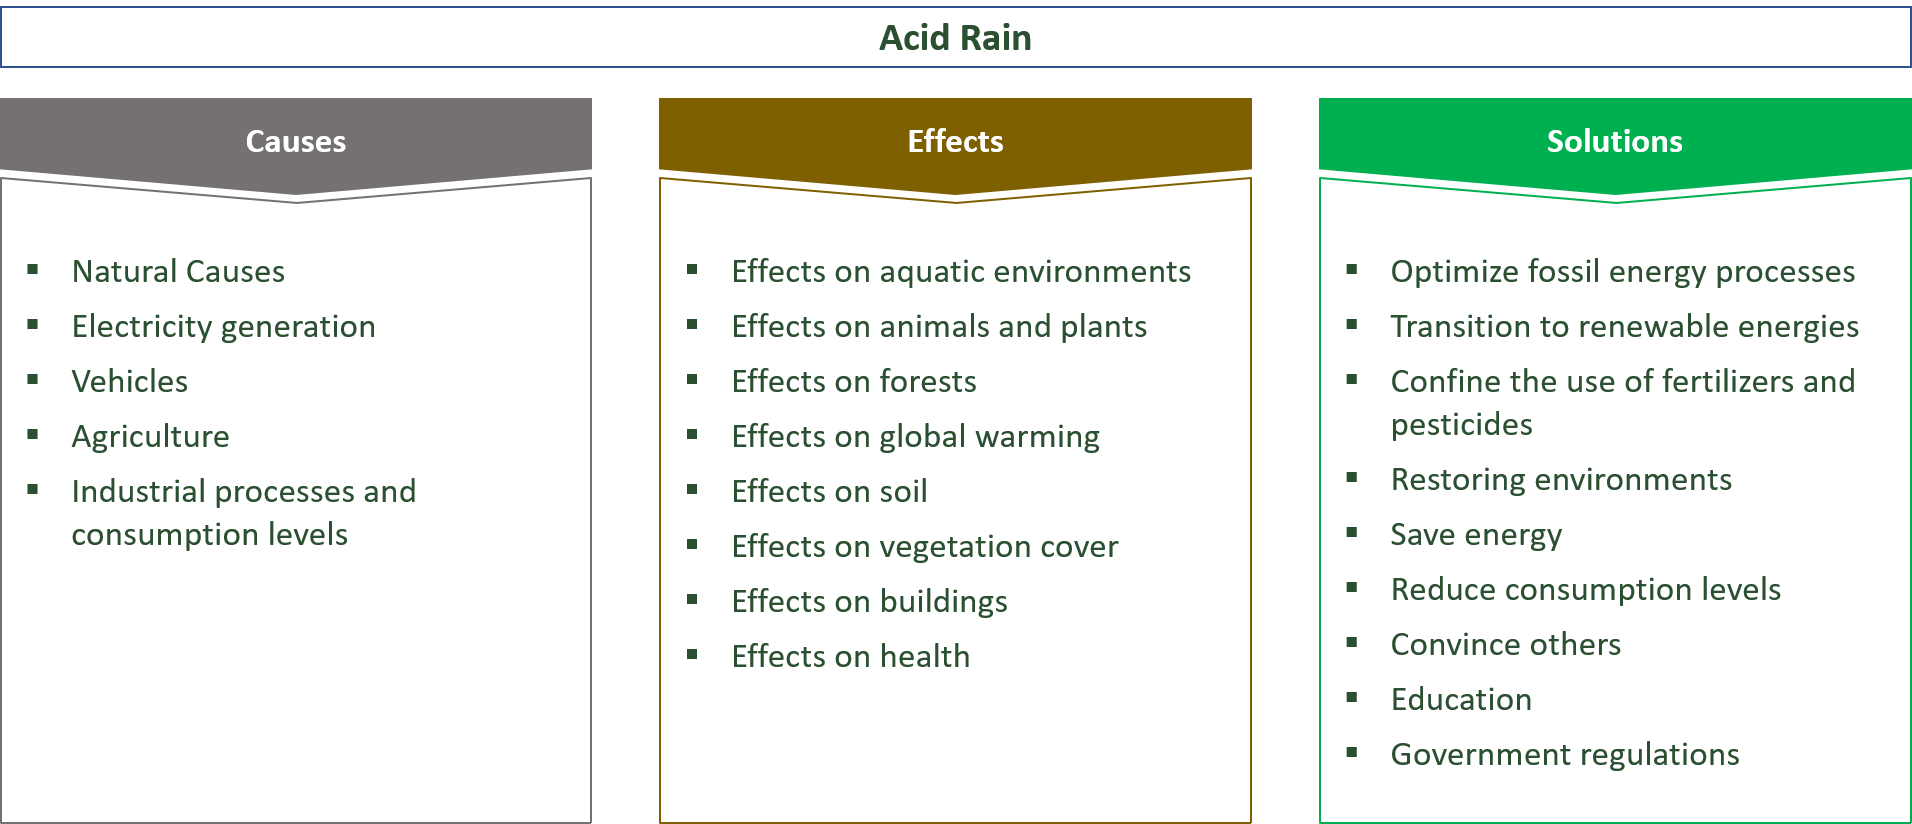 the causes, effects and solutions for acid rain